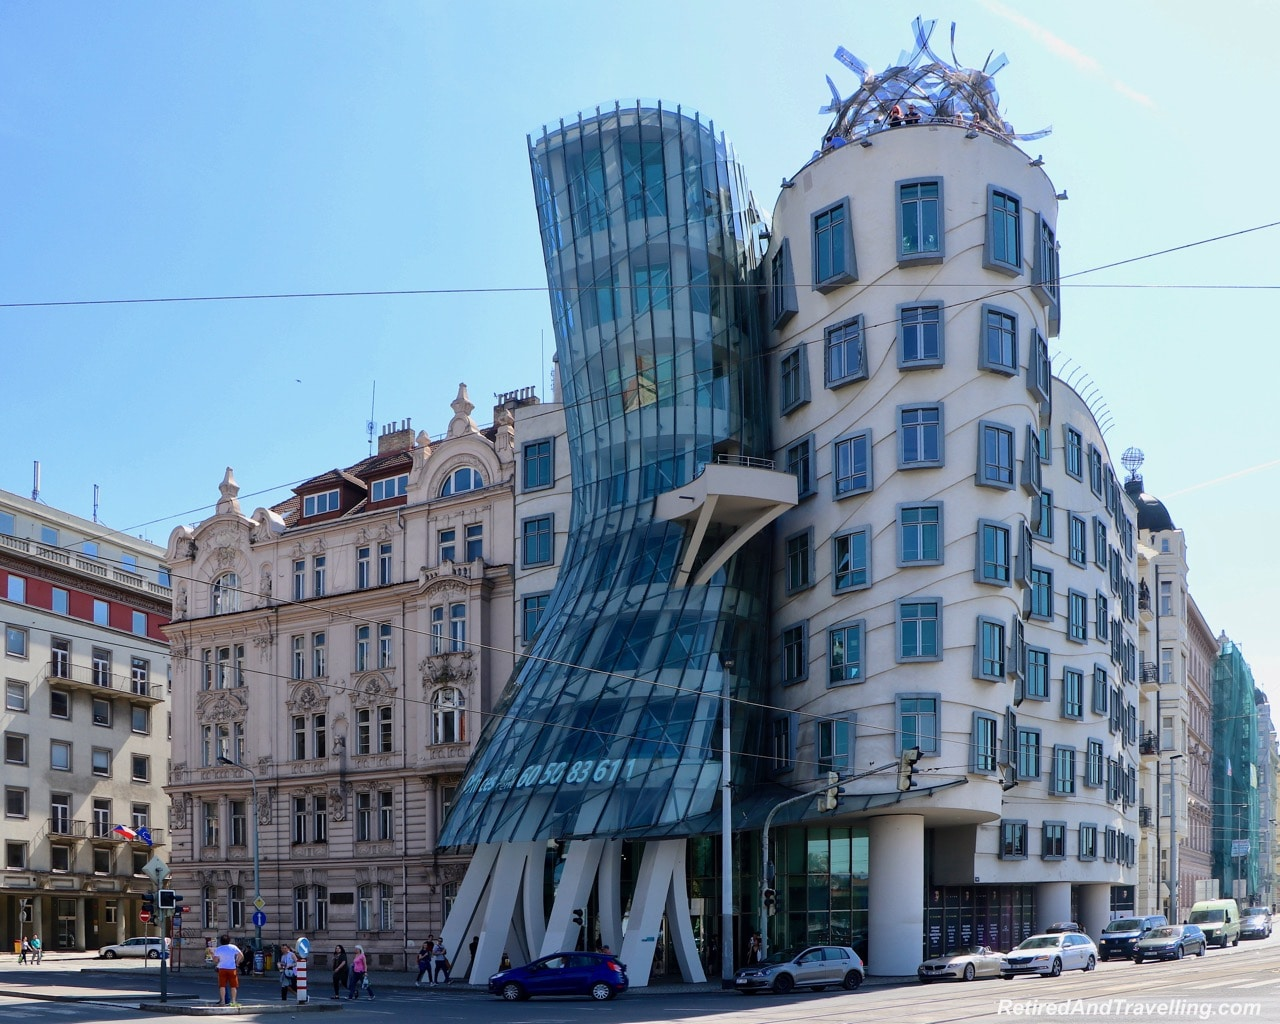 Dancing House - Buildings And Architecture Of Prague.jpg